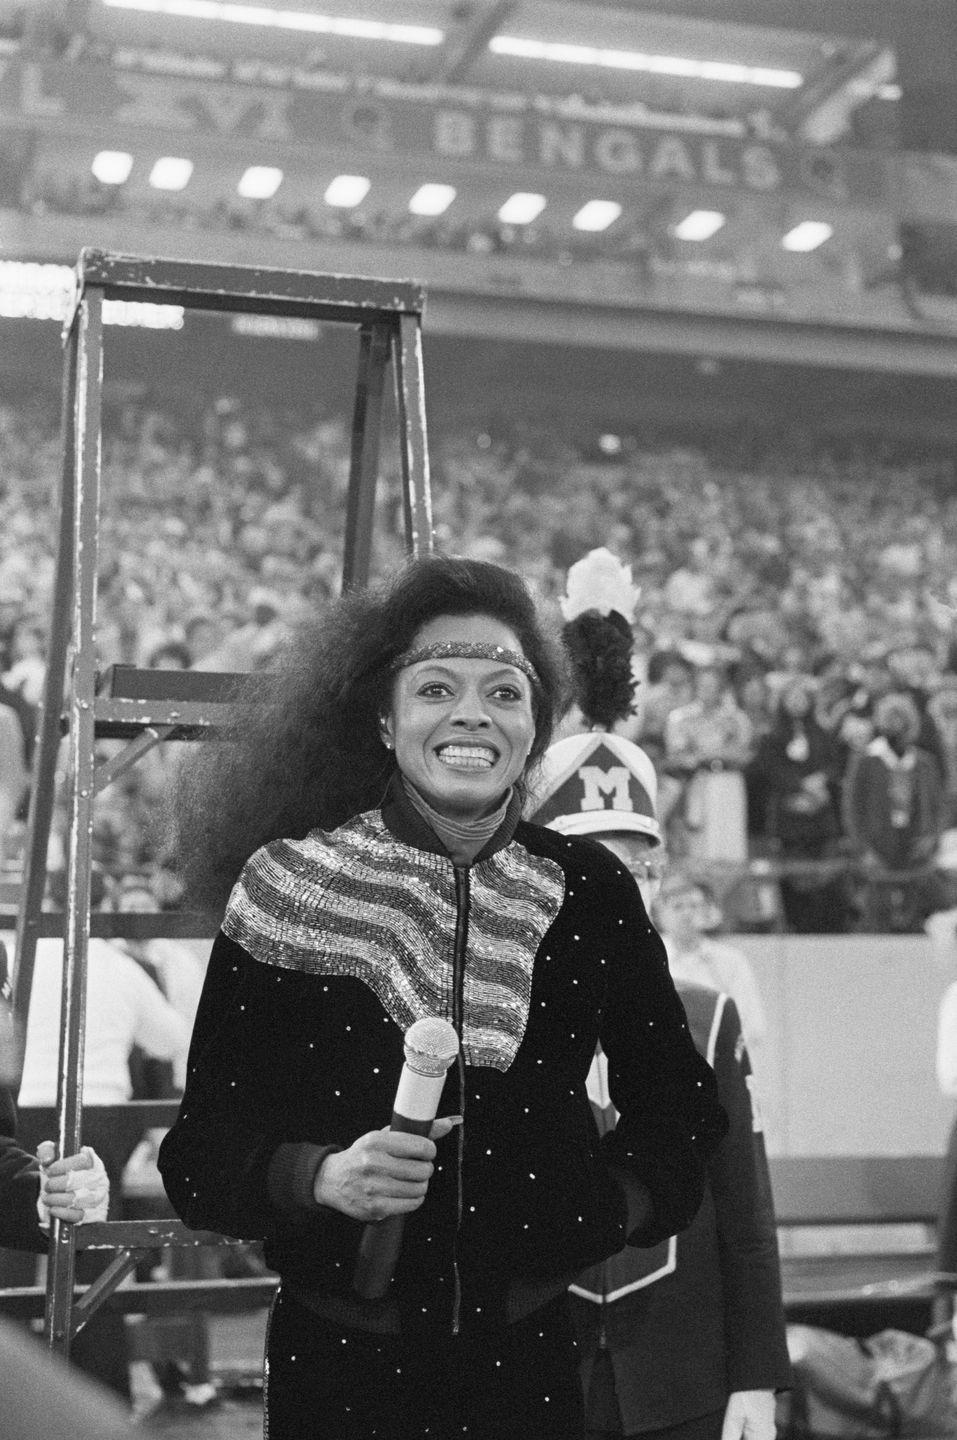 """<p>Diana Ross's performance of """"The Star-Spangled Banner"""" at the Super Bowl XVI in 1982 was far more significant than just a stellar rendition of the national anthem. Ross was the <a href=""""https://www.businessinsider.com/watch-the-most-memorable-national-anthems-in-super-bowl-history-2012-2"""" rel=""""nofollow noopener"""" target=""""_blank"""" data-ylk=""""slk:first pop star to be selected to perform"""" class=""""link rapid-noclick-resp"""">first pop star to be selected to perform</a>, a tradition which now attracts some of the biggest names in the music industry. In 1996, Ross returned for the halftime show.</p>"""